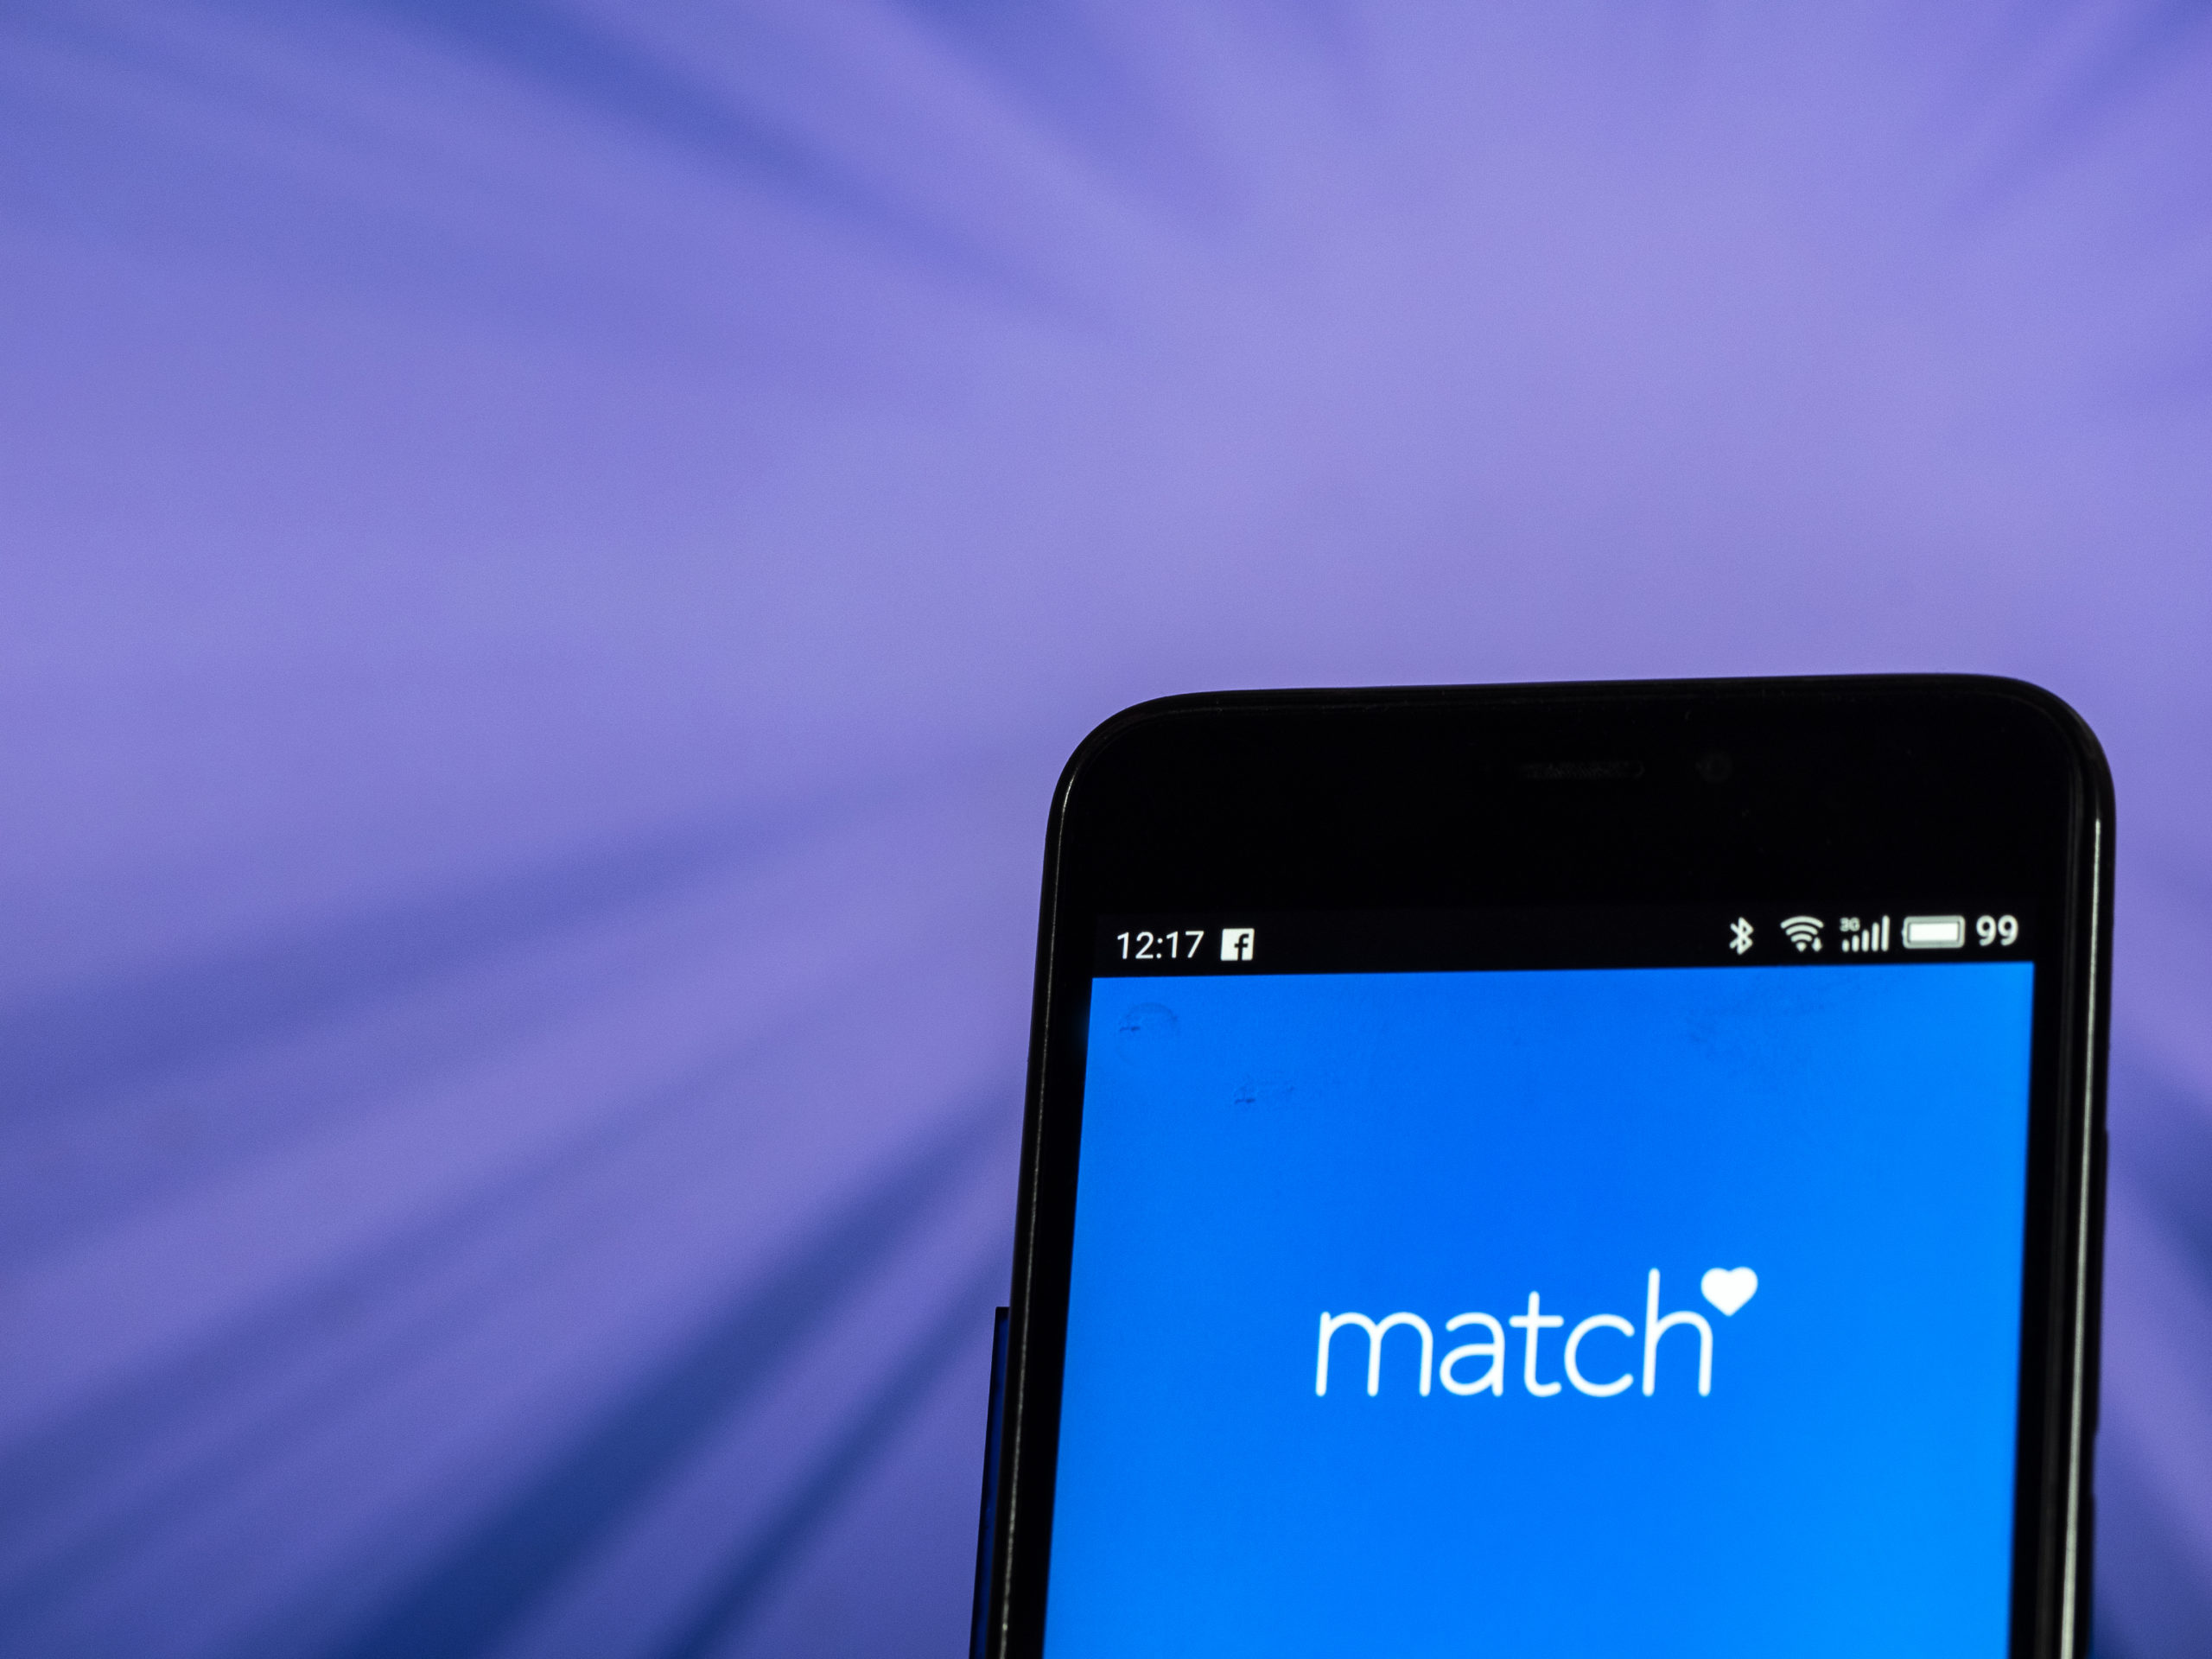 Match is a popular online dating website. (Igor Golovniov/SOPA Images/LightRocket via Getty Images)